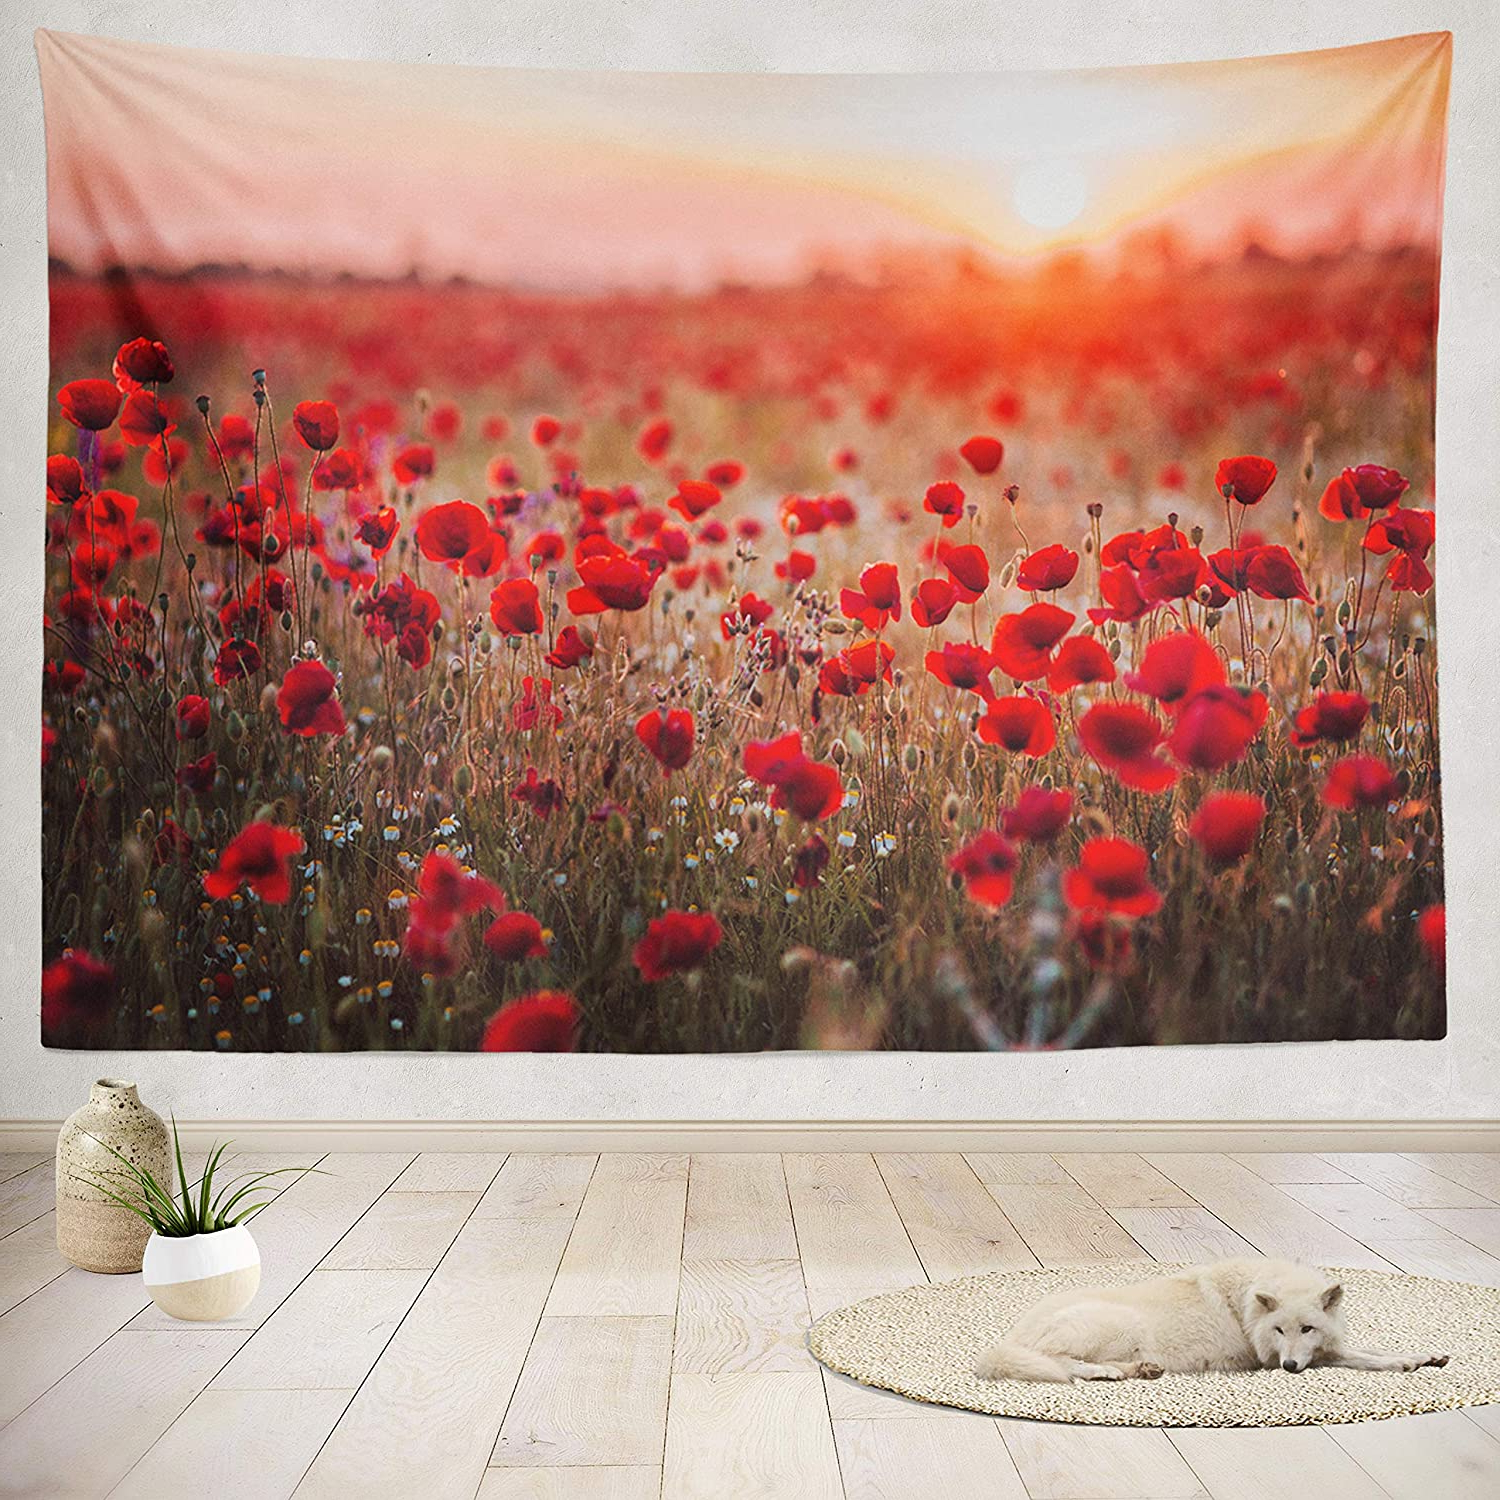 Well Liked Blended Fabric Poppy Red Wall Hangings In Asoco Tapestry Wall Handing Beautiful Field Red Poppies Sunset Light Russia Poppy Field Red Russia Wall Tapestry For Bedroom Living Room Tablecloth (View 2 of 20)